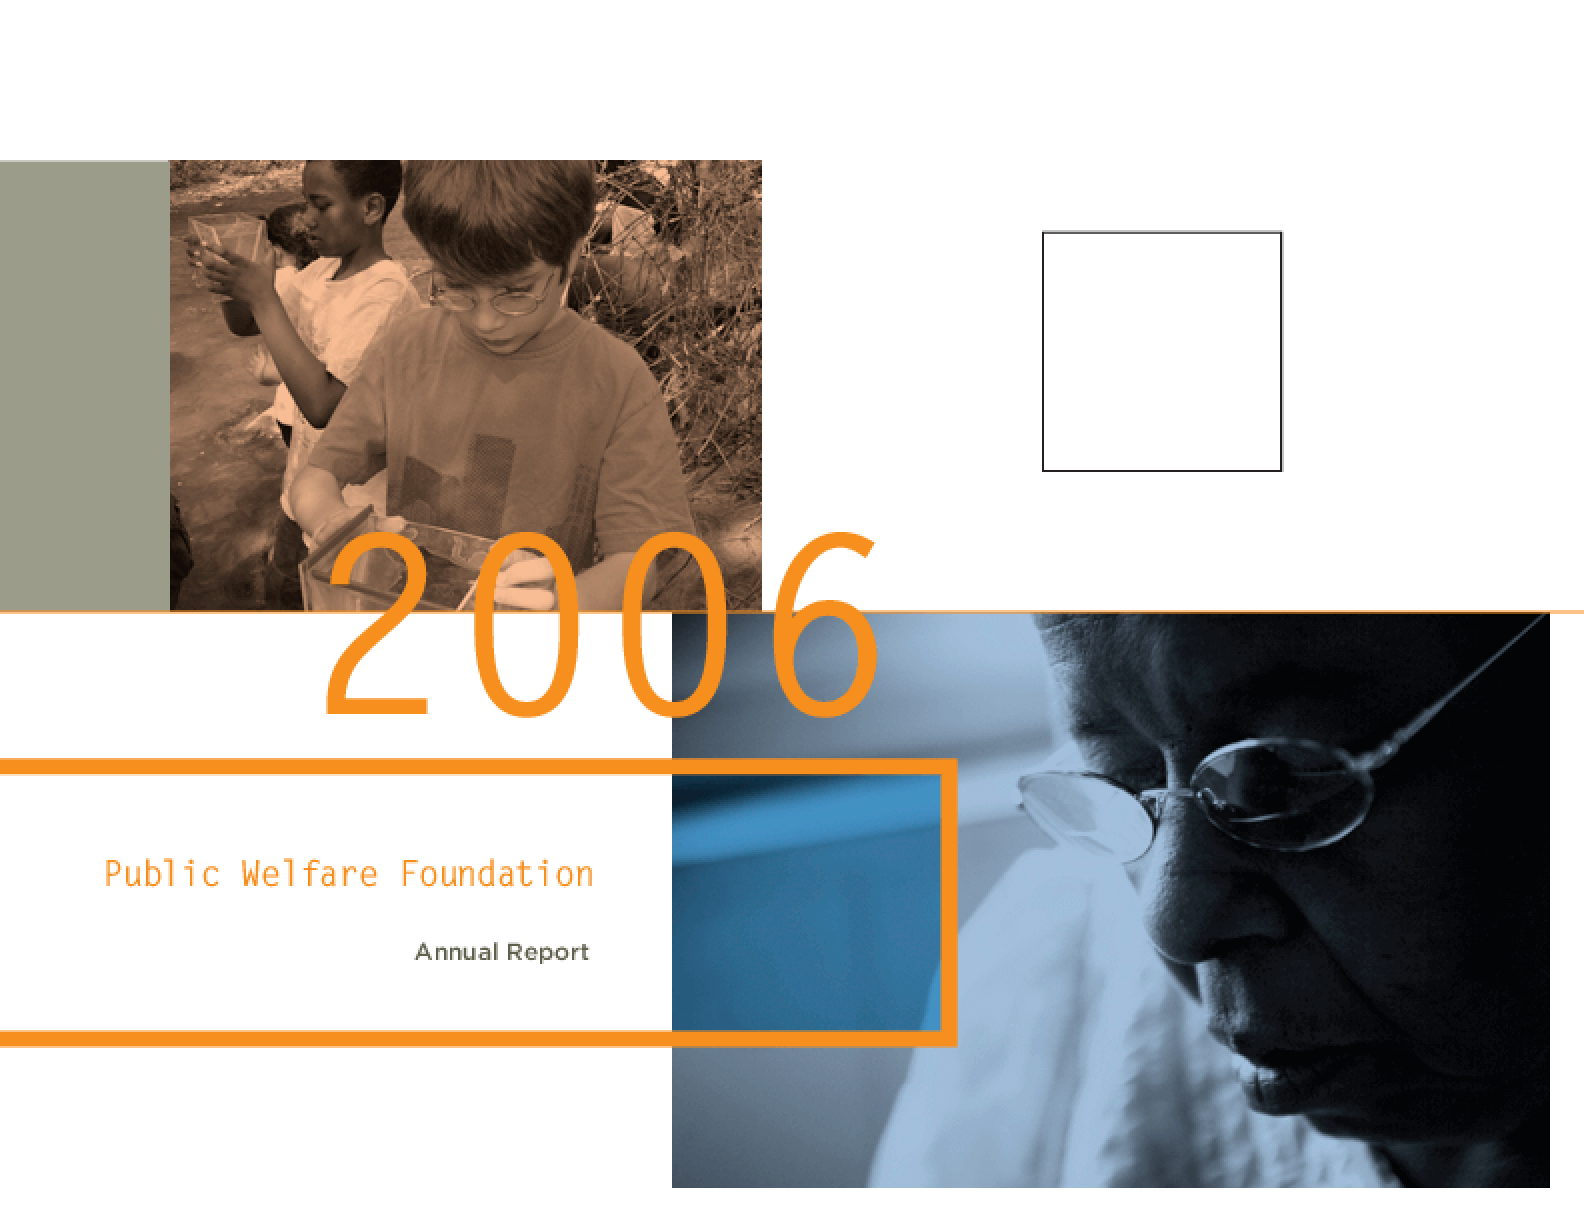 Public Welfare Foundation - 2006 Annual Report